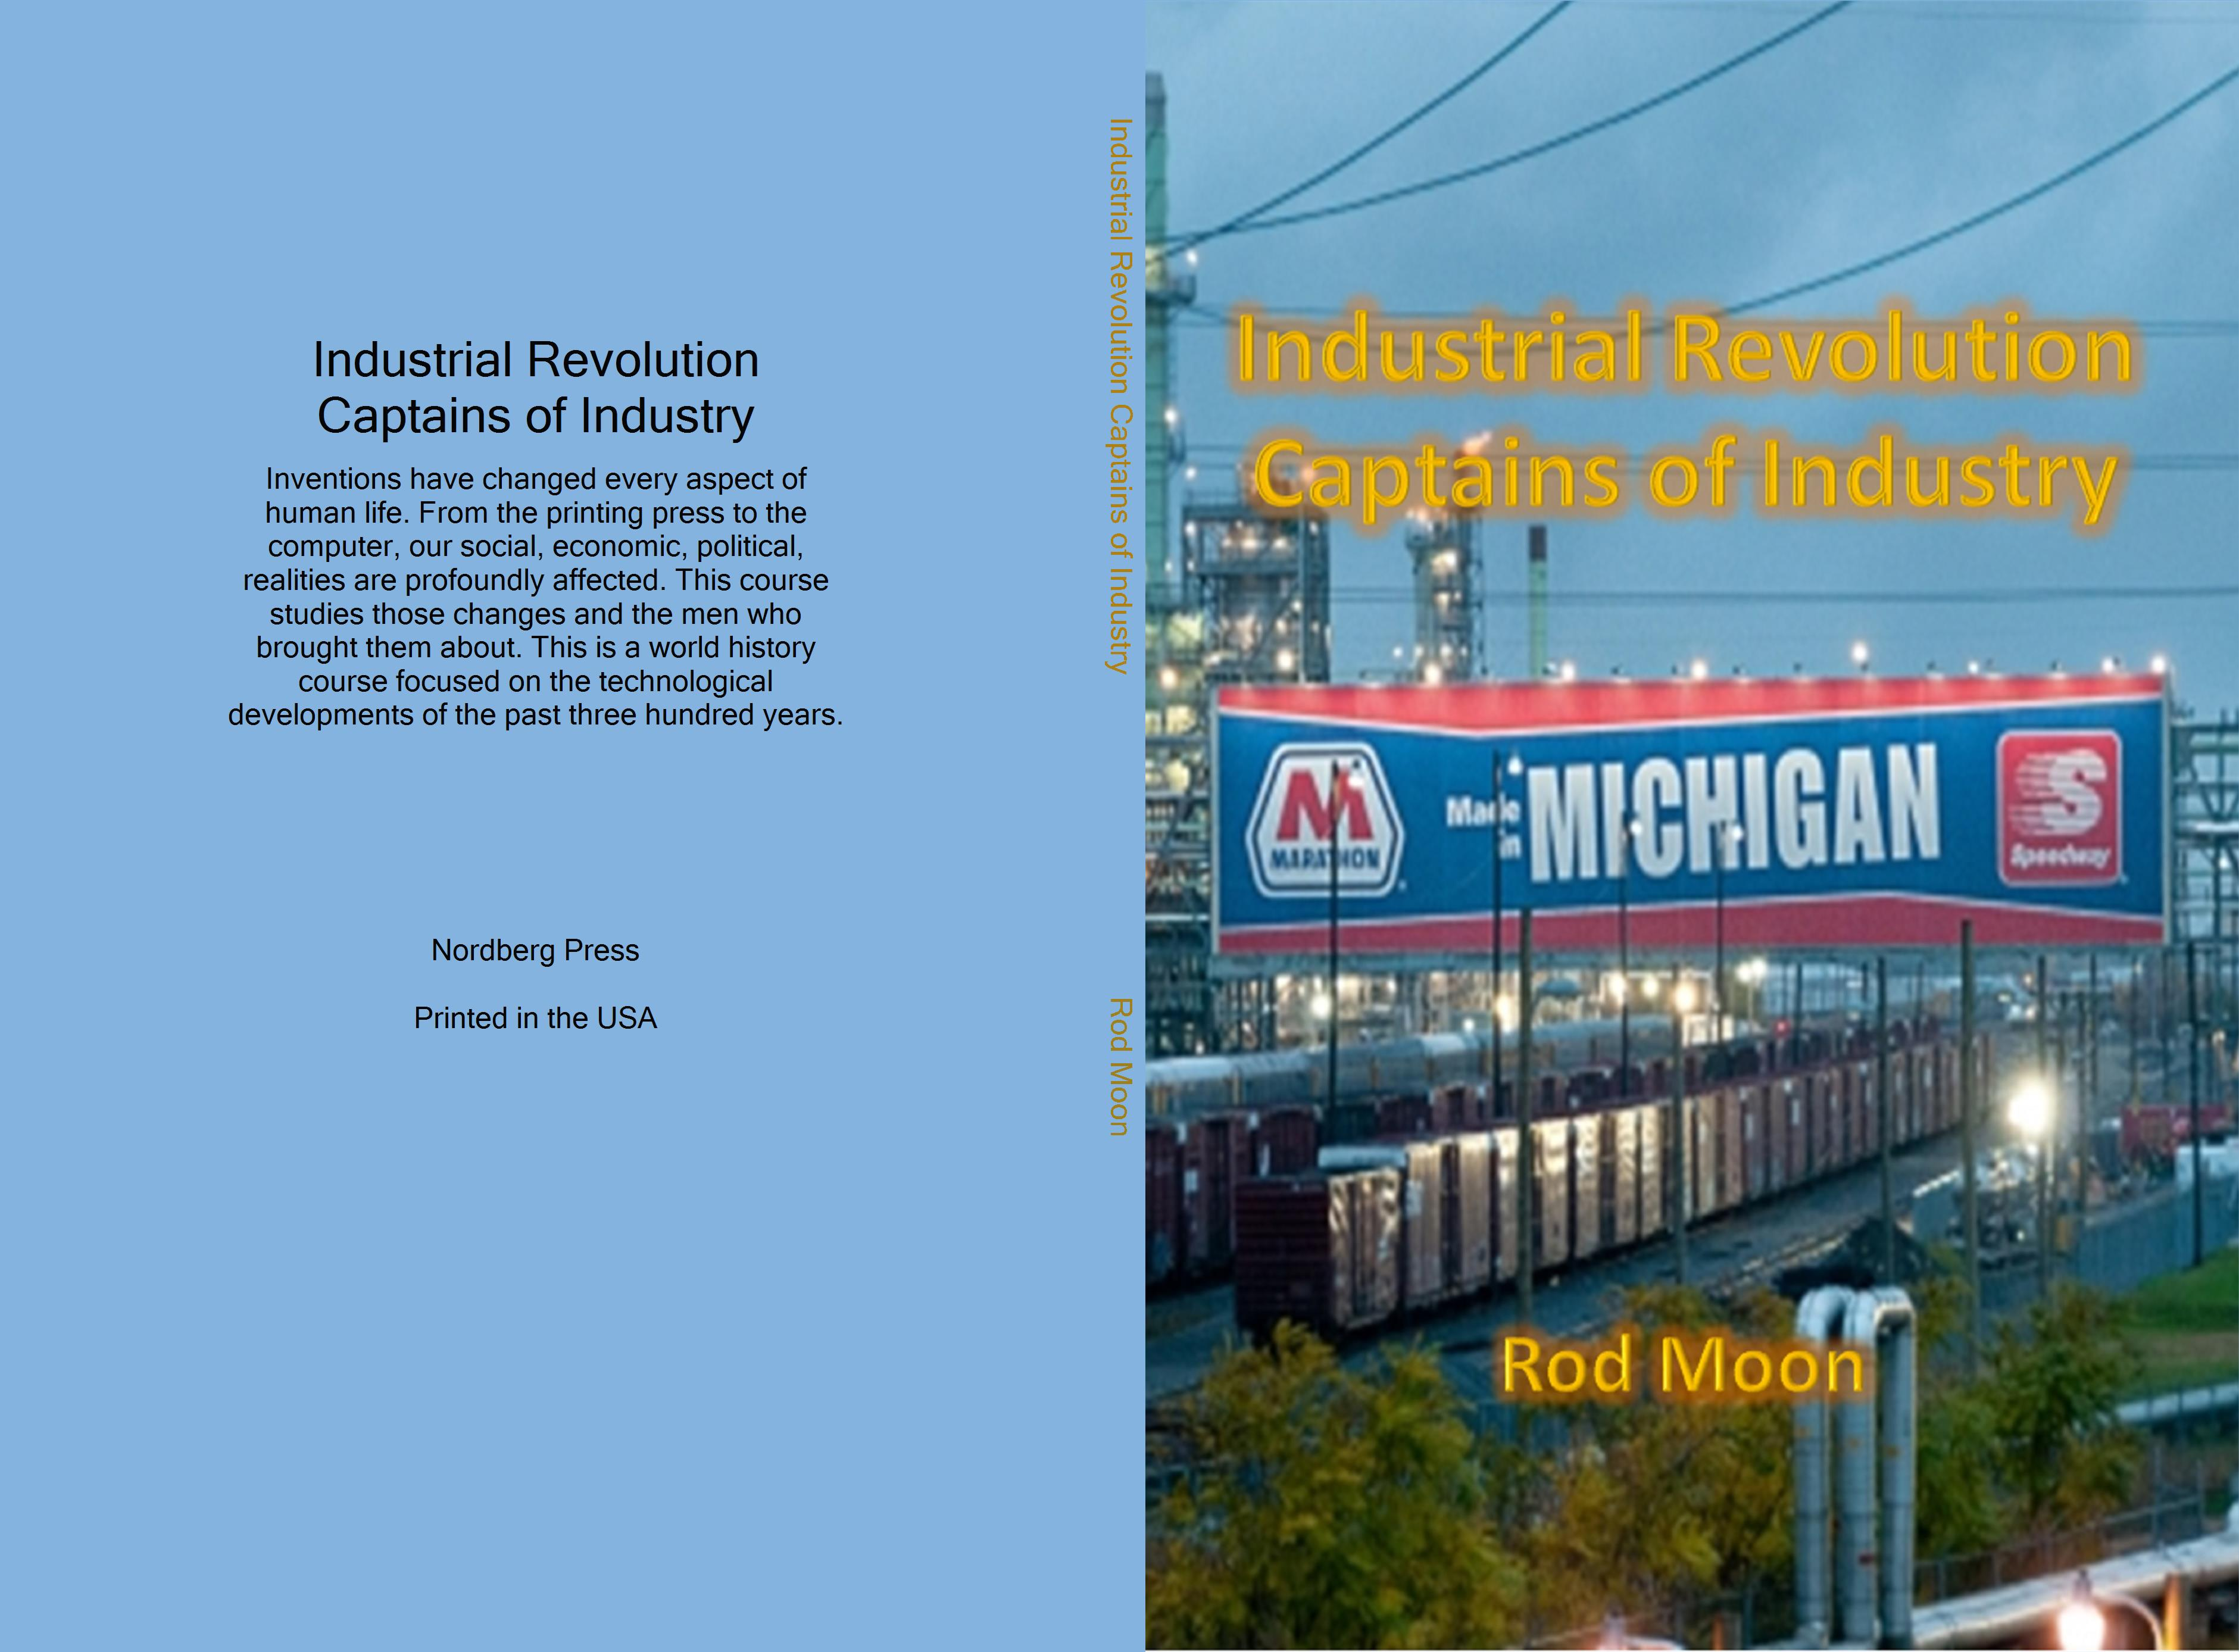 Industrial Revolution Captains of Industry cover image